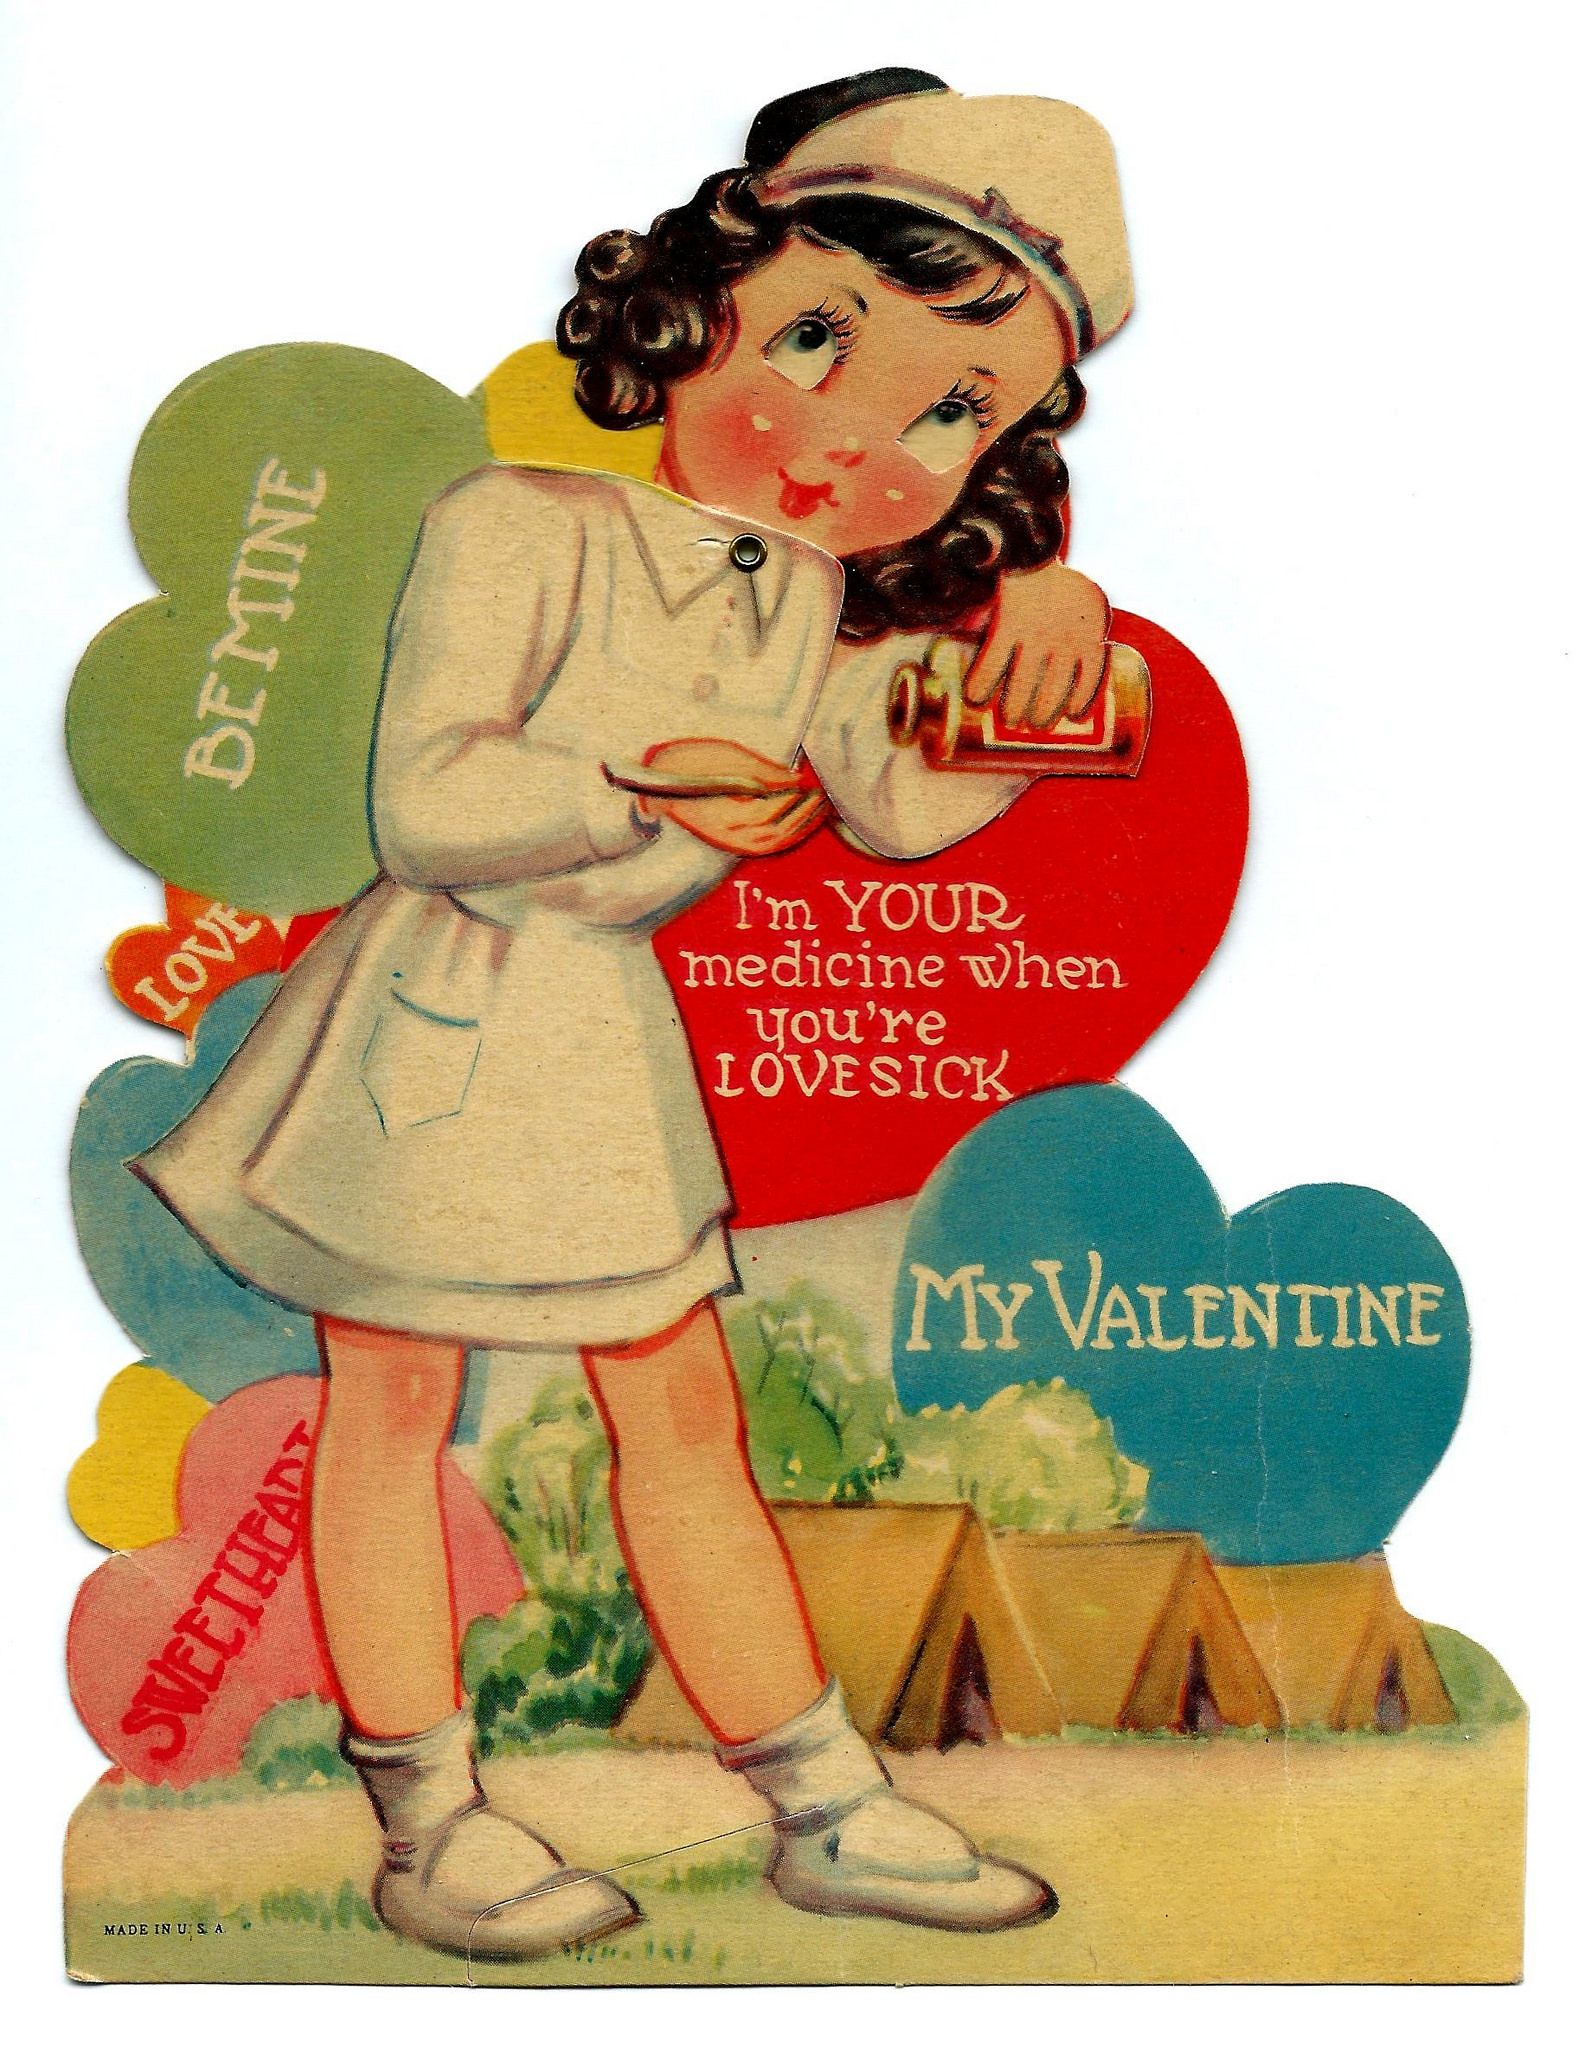 Vintage Mechanical Eyes Head Moves Valentine Day Greeting Card I M Your Medicine When You Re Lovesick Made In Usa Circa 1940 Vintage Valentines Vintage Valentine Cards Nursing Valentine